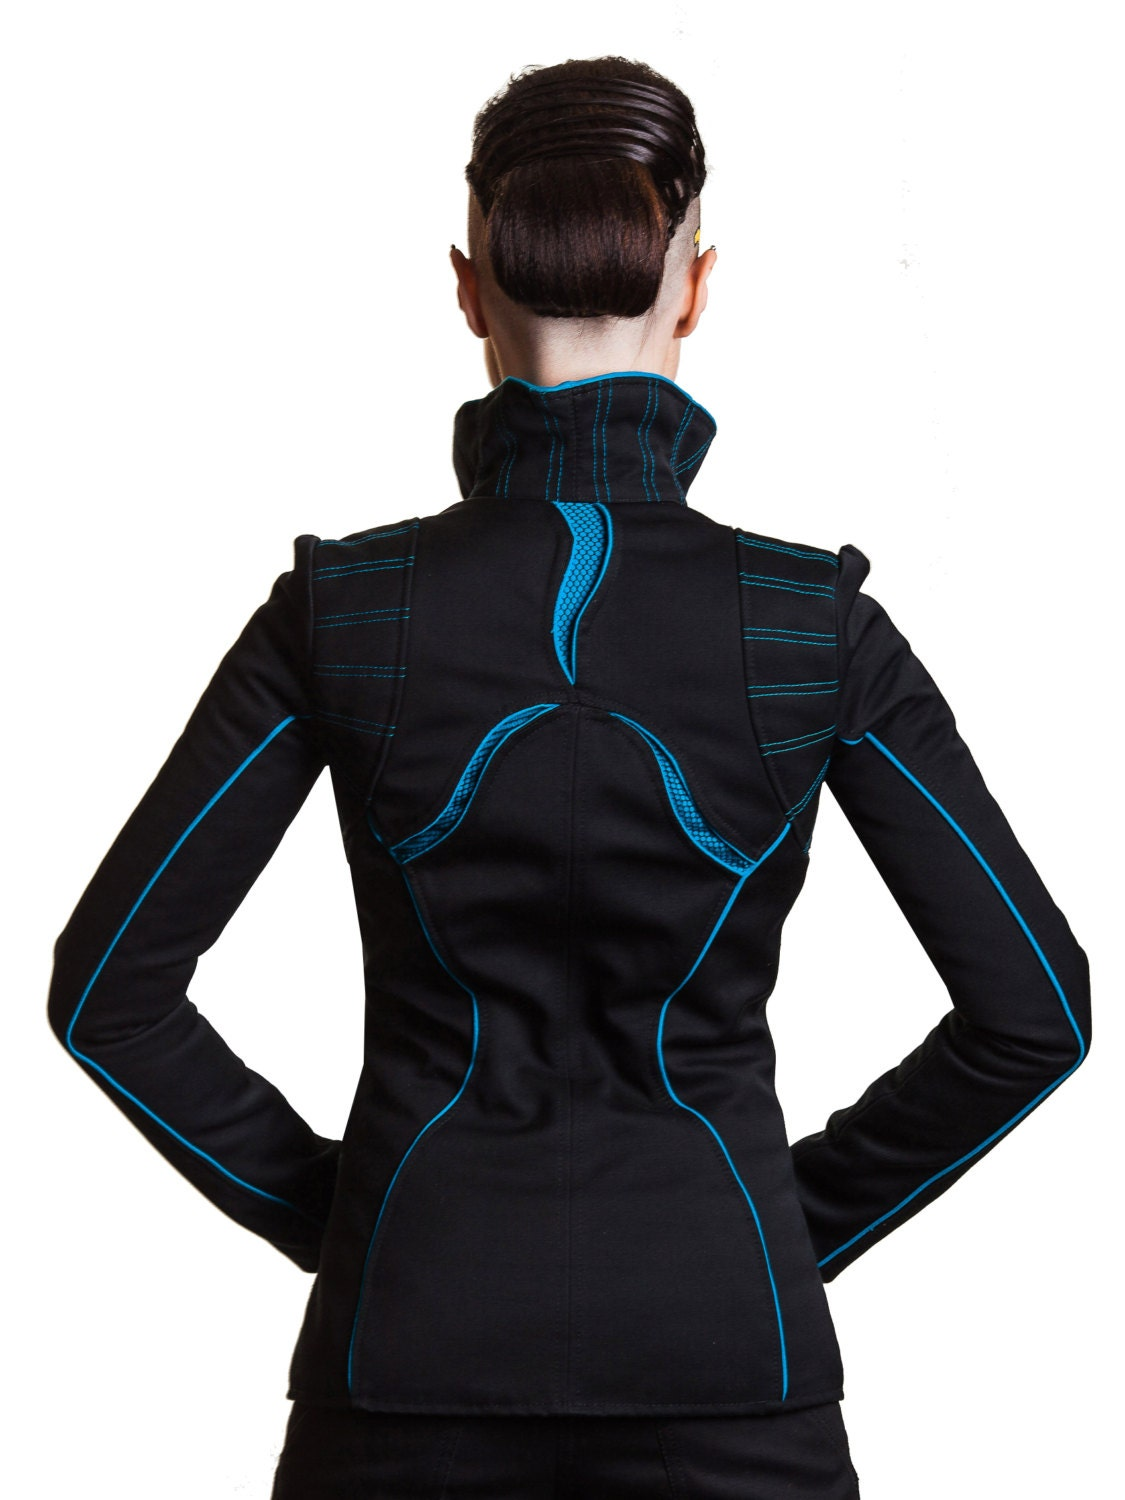 Futuristic Hoodie Images - Reverse Search